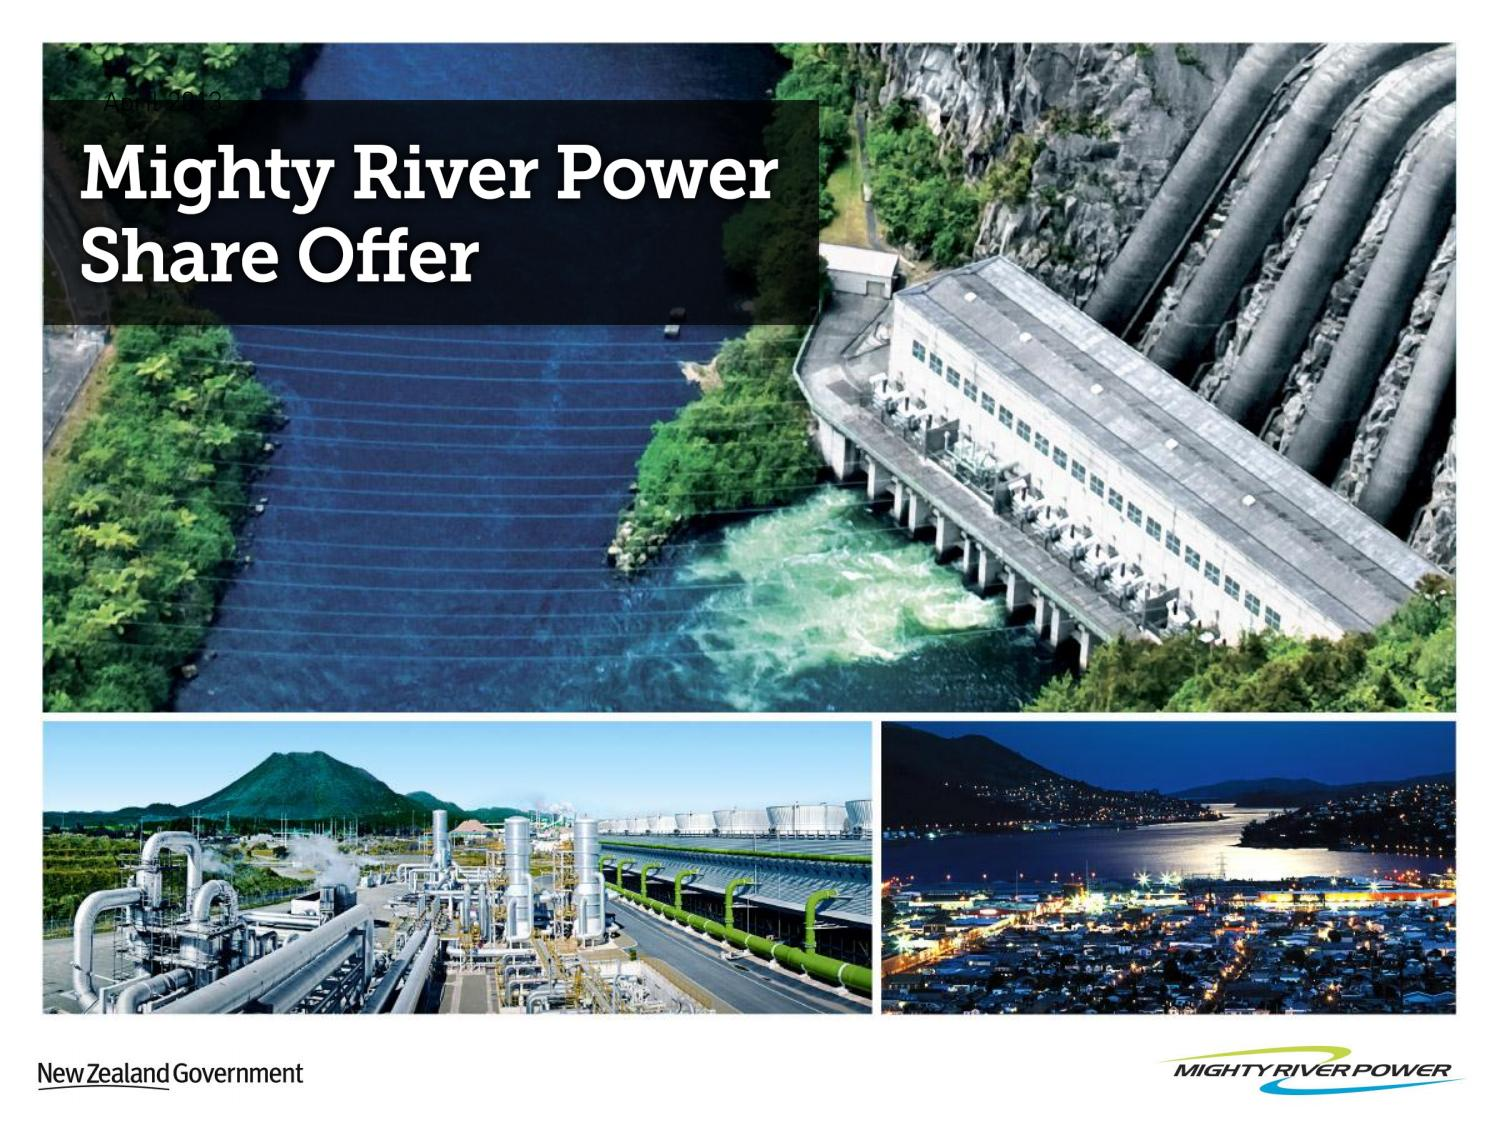 Ipo price of mighty river power shares